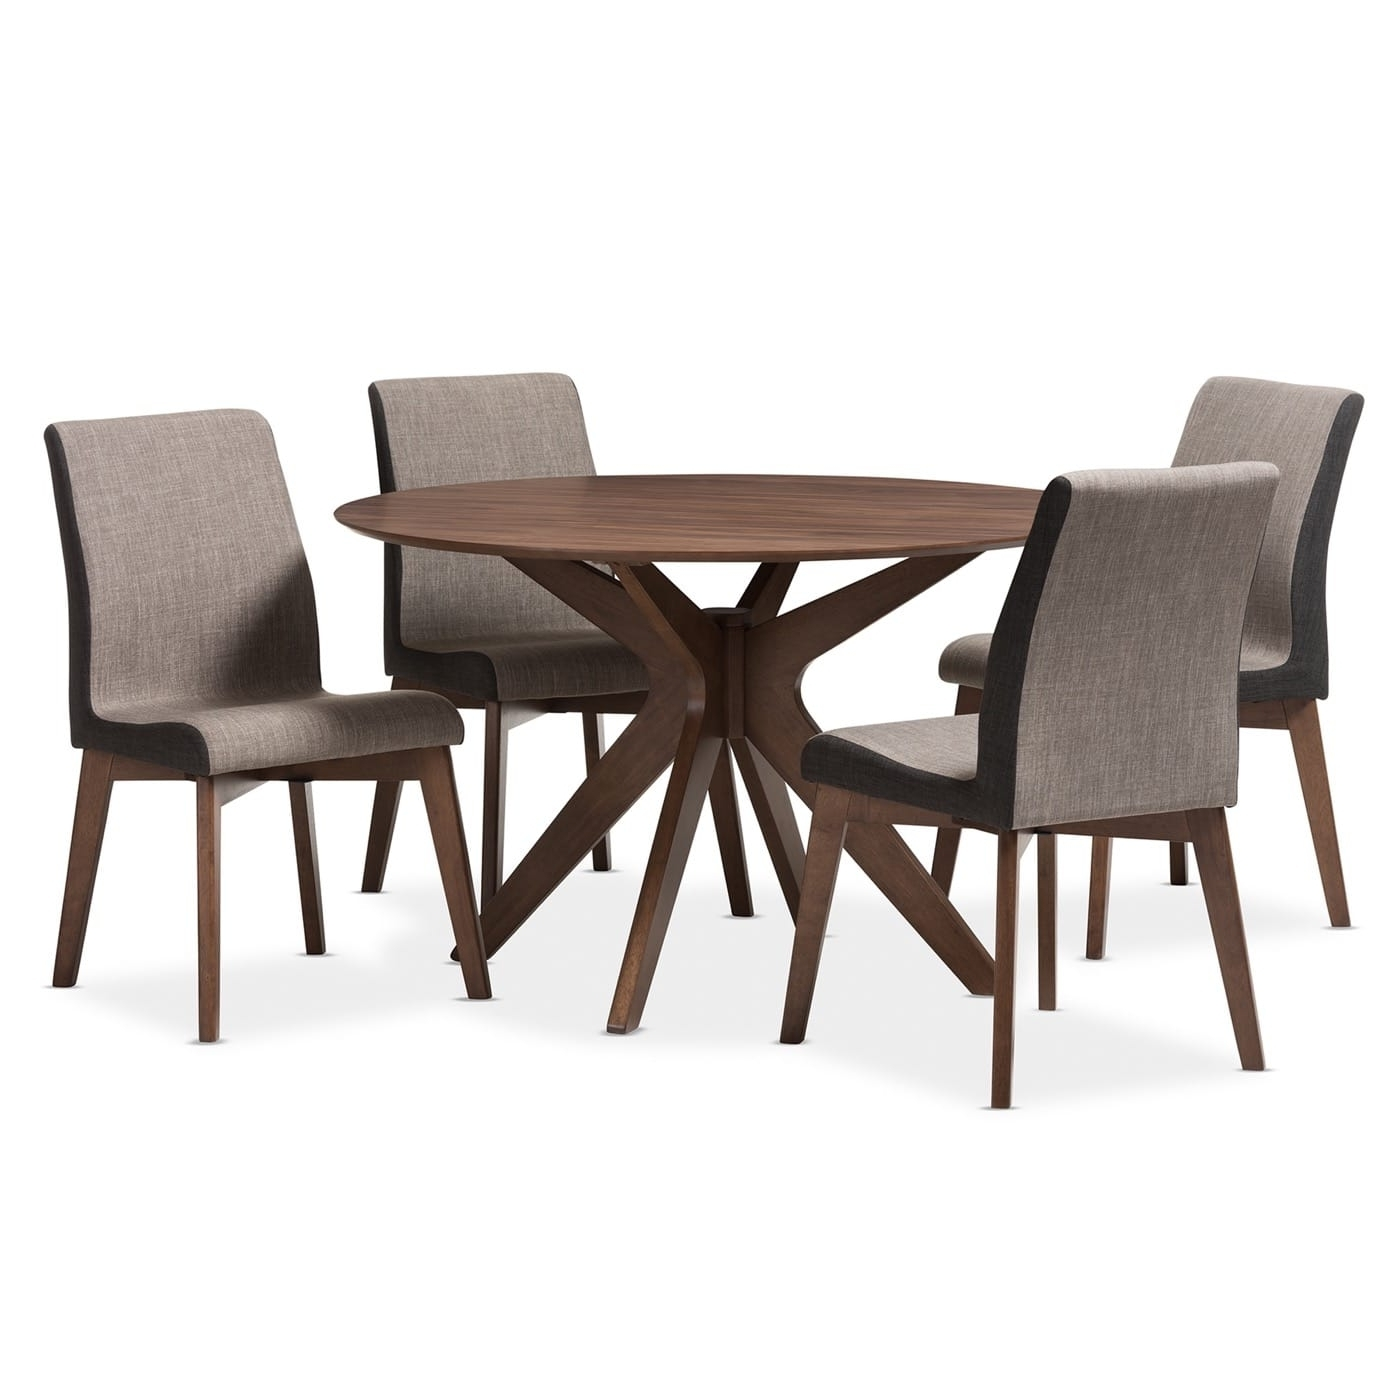 Grady 5 Piece Round Dining Sets Regarding Most Current Round 5 Piece Dining Set – Round Ideas (View 12 of 25)